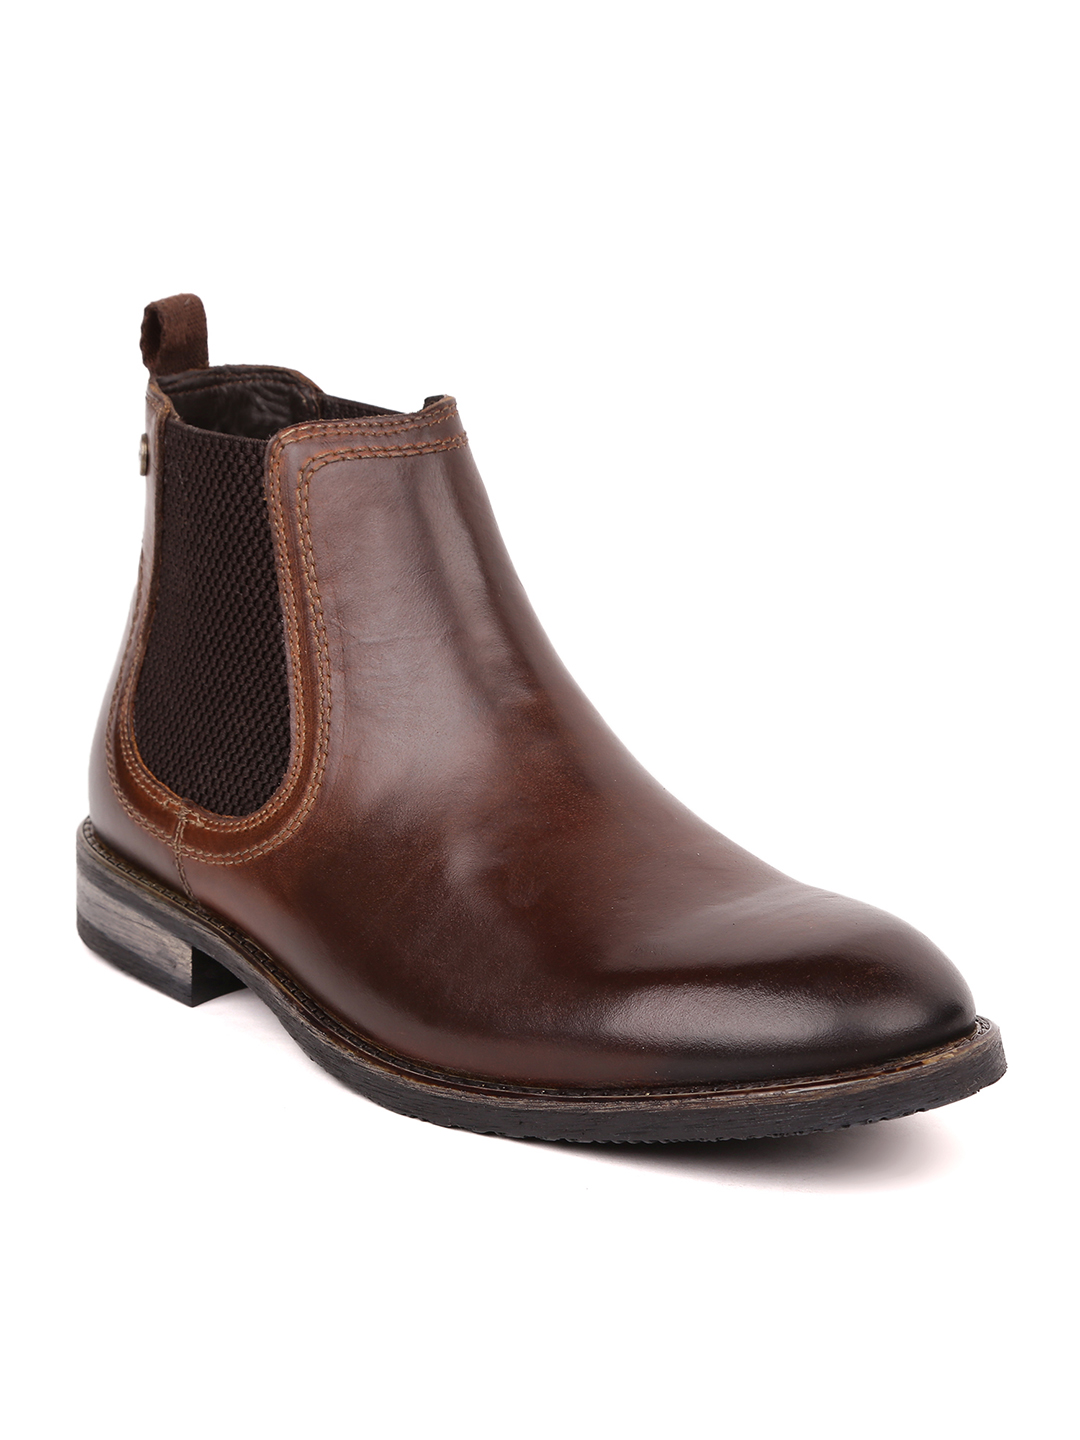 MASABIH   Masabih Genuine Leather Brown Chelsea Boots